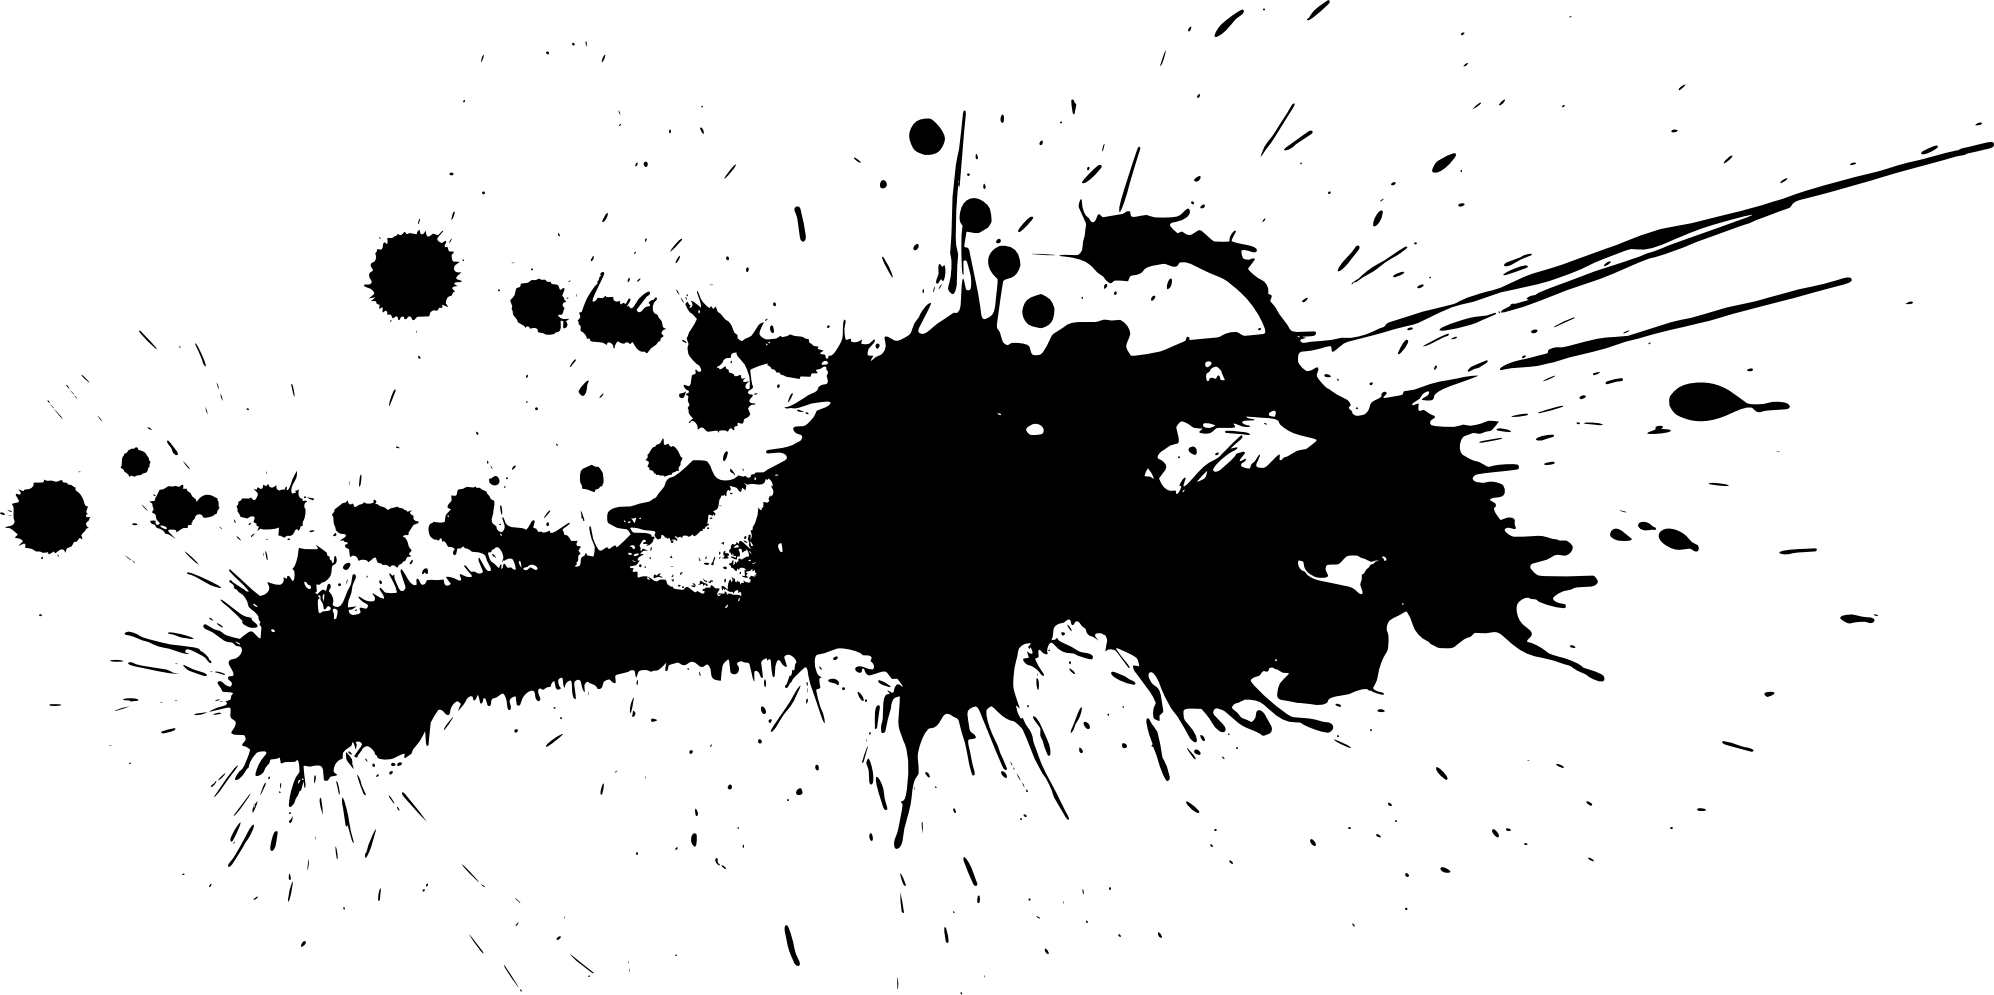 Black stain png. Splatter transparent images splatterpng